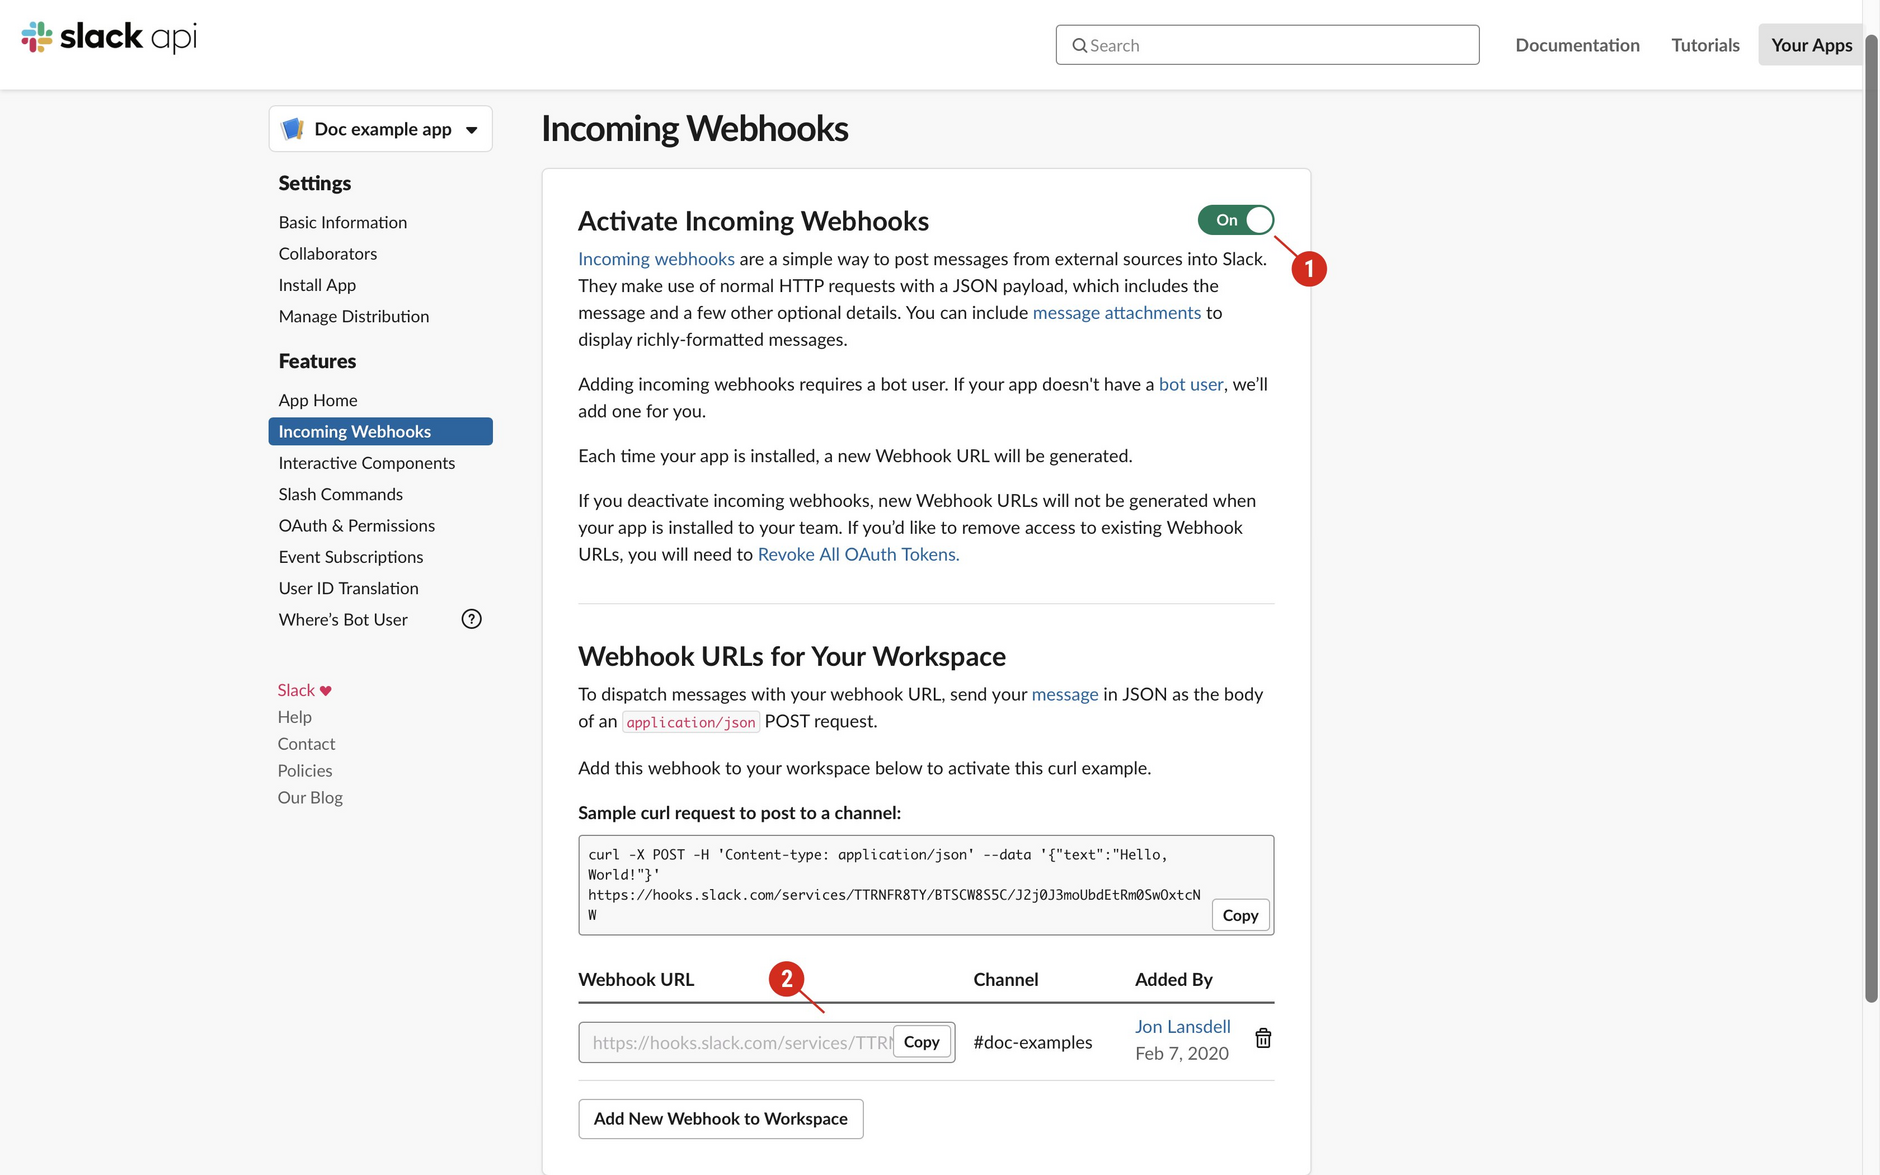 Set up an app in Slack to accept incoming webhooks